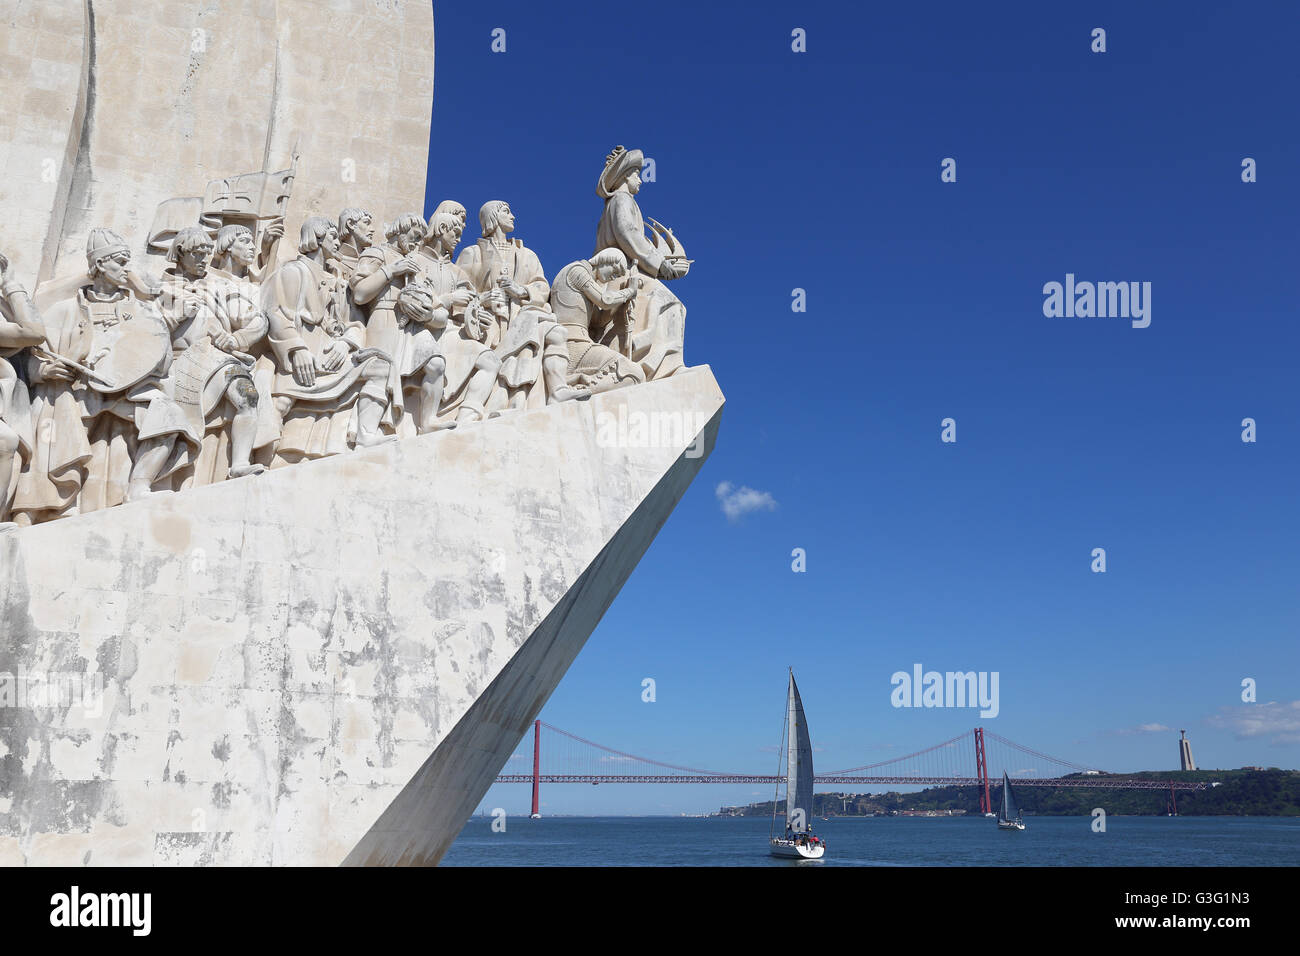 Discoveries Monument on the banks of the River Tagus at Belem, Lisbon, looking outwards past yachts and the April - Stock Image